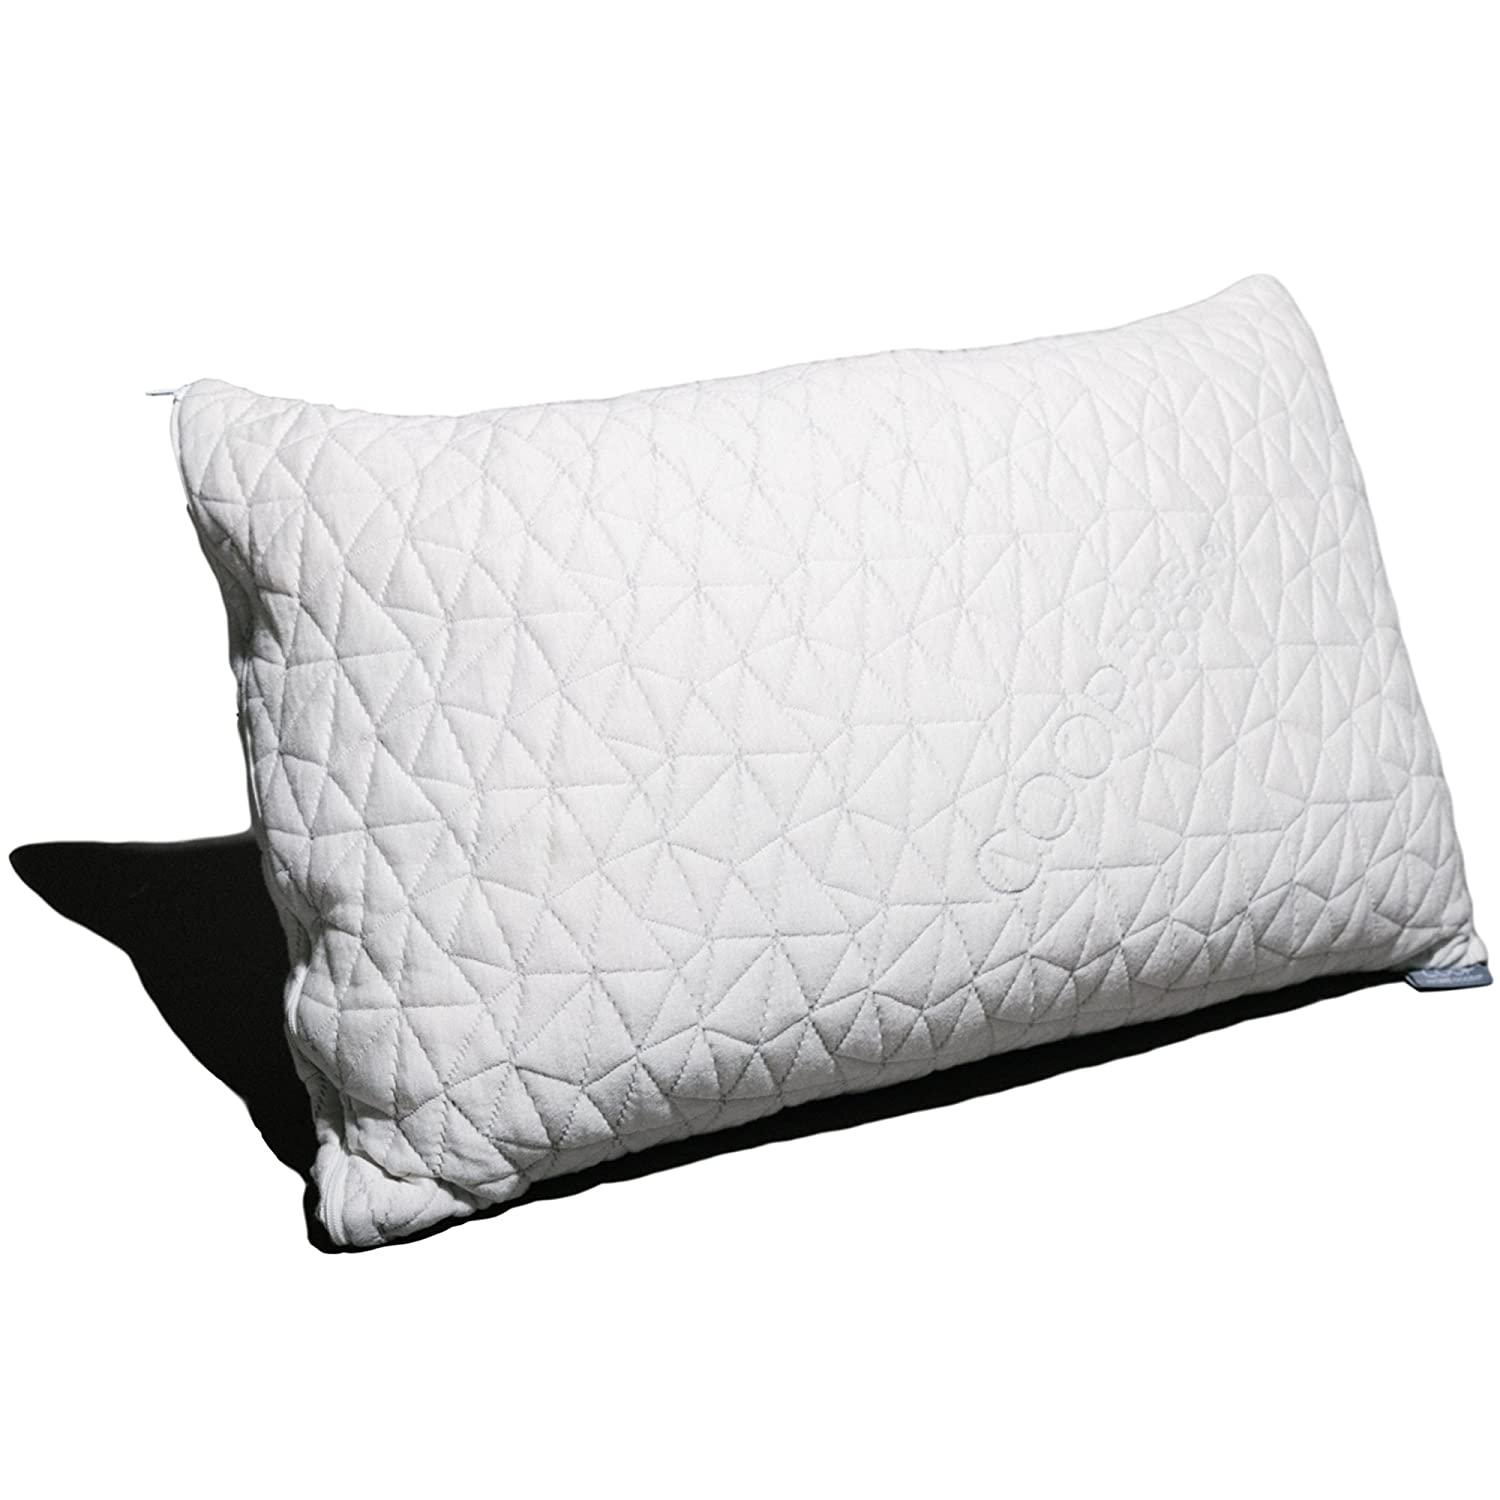 BEST SELLER - Amazon.com -  TWO Coop Home Goods QUEEN Size Shredded Hypoallergenic Memory Foam Pillows